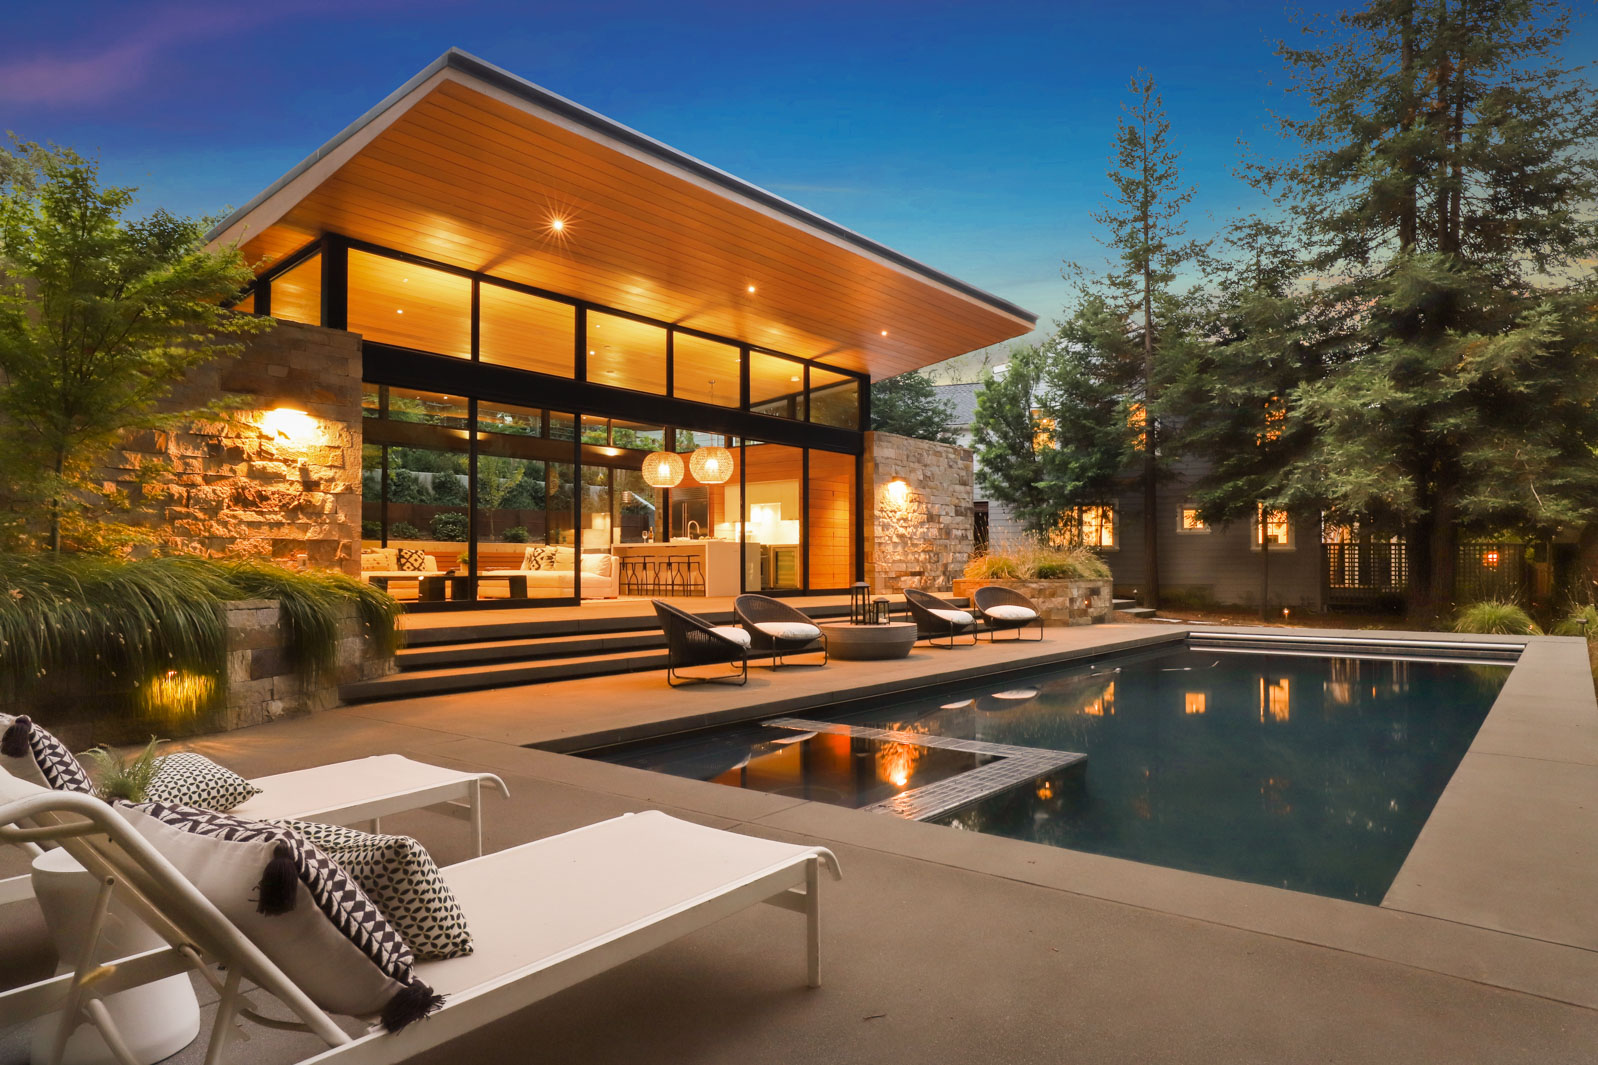 This is the pool house, a gleaming, modern and eco-friendly masterpiece on the property.